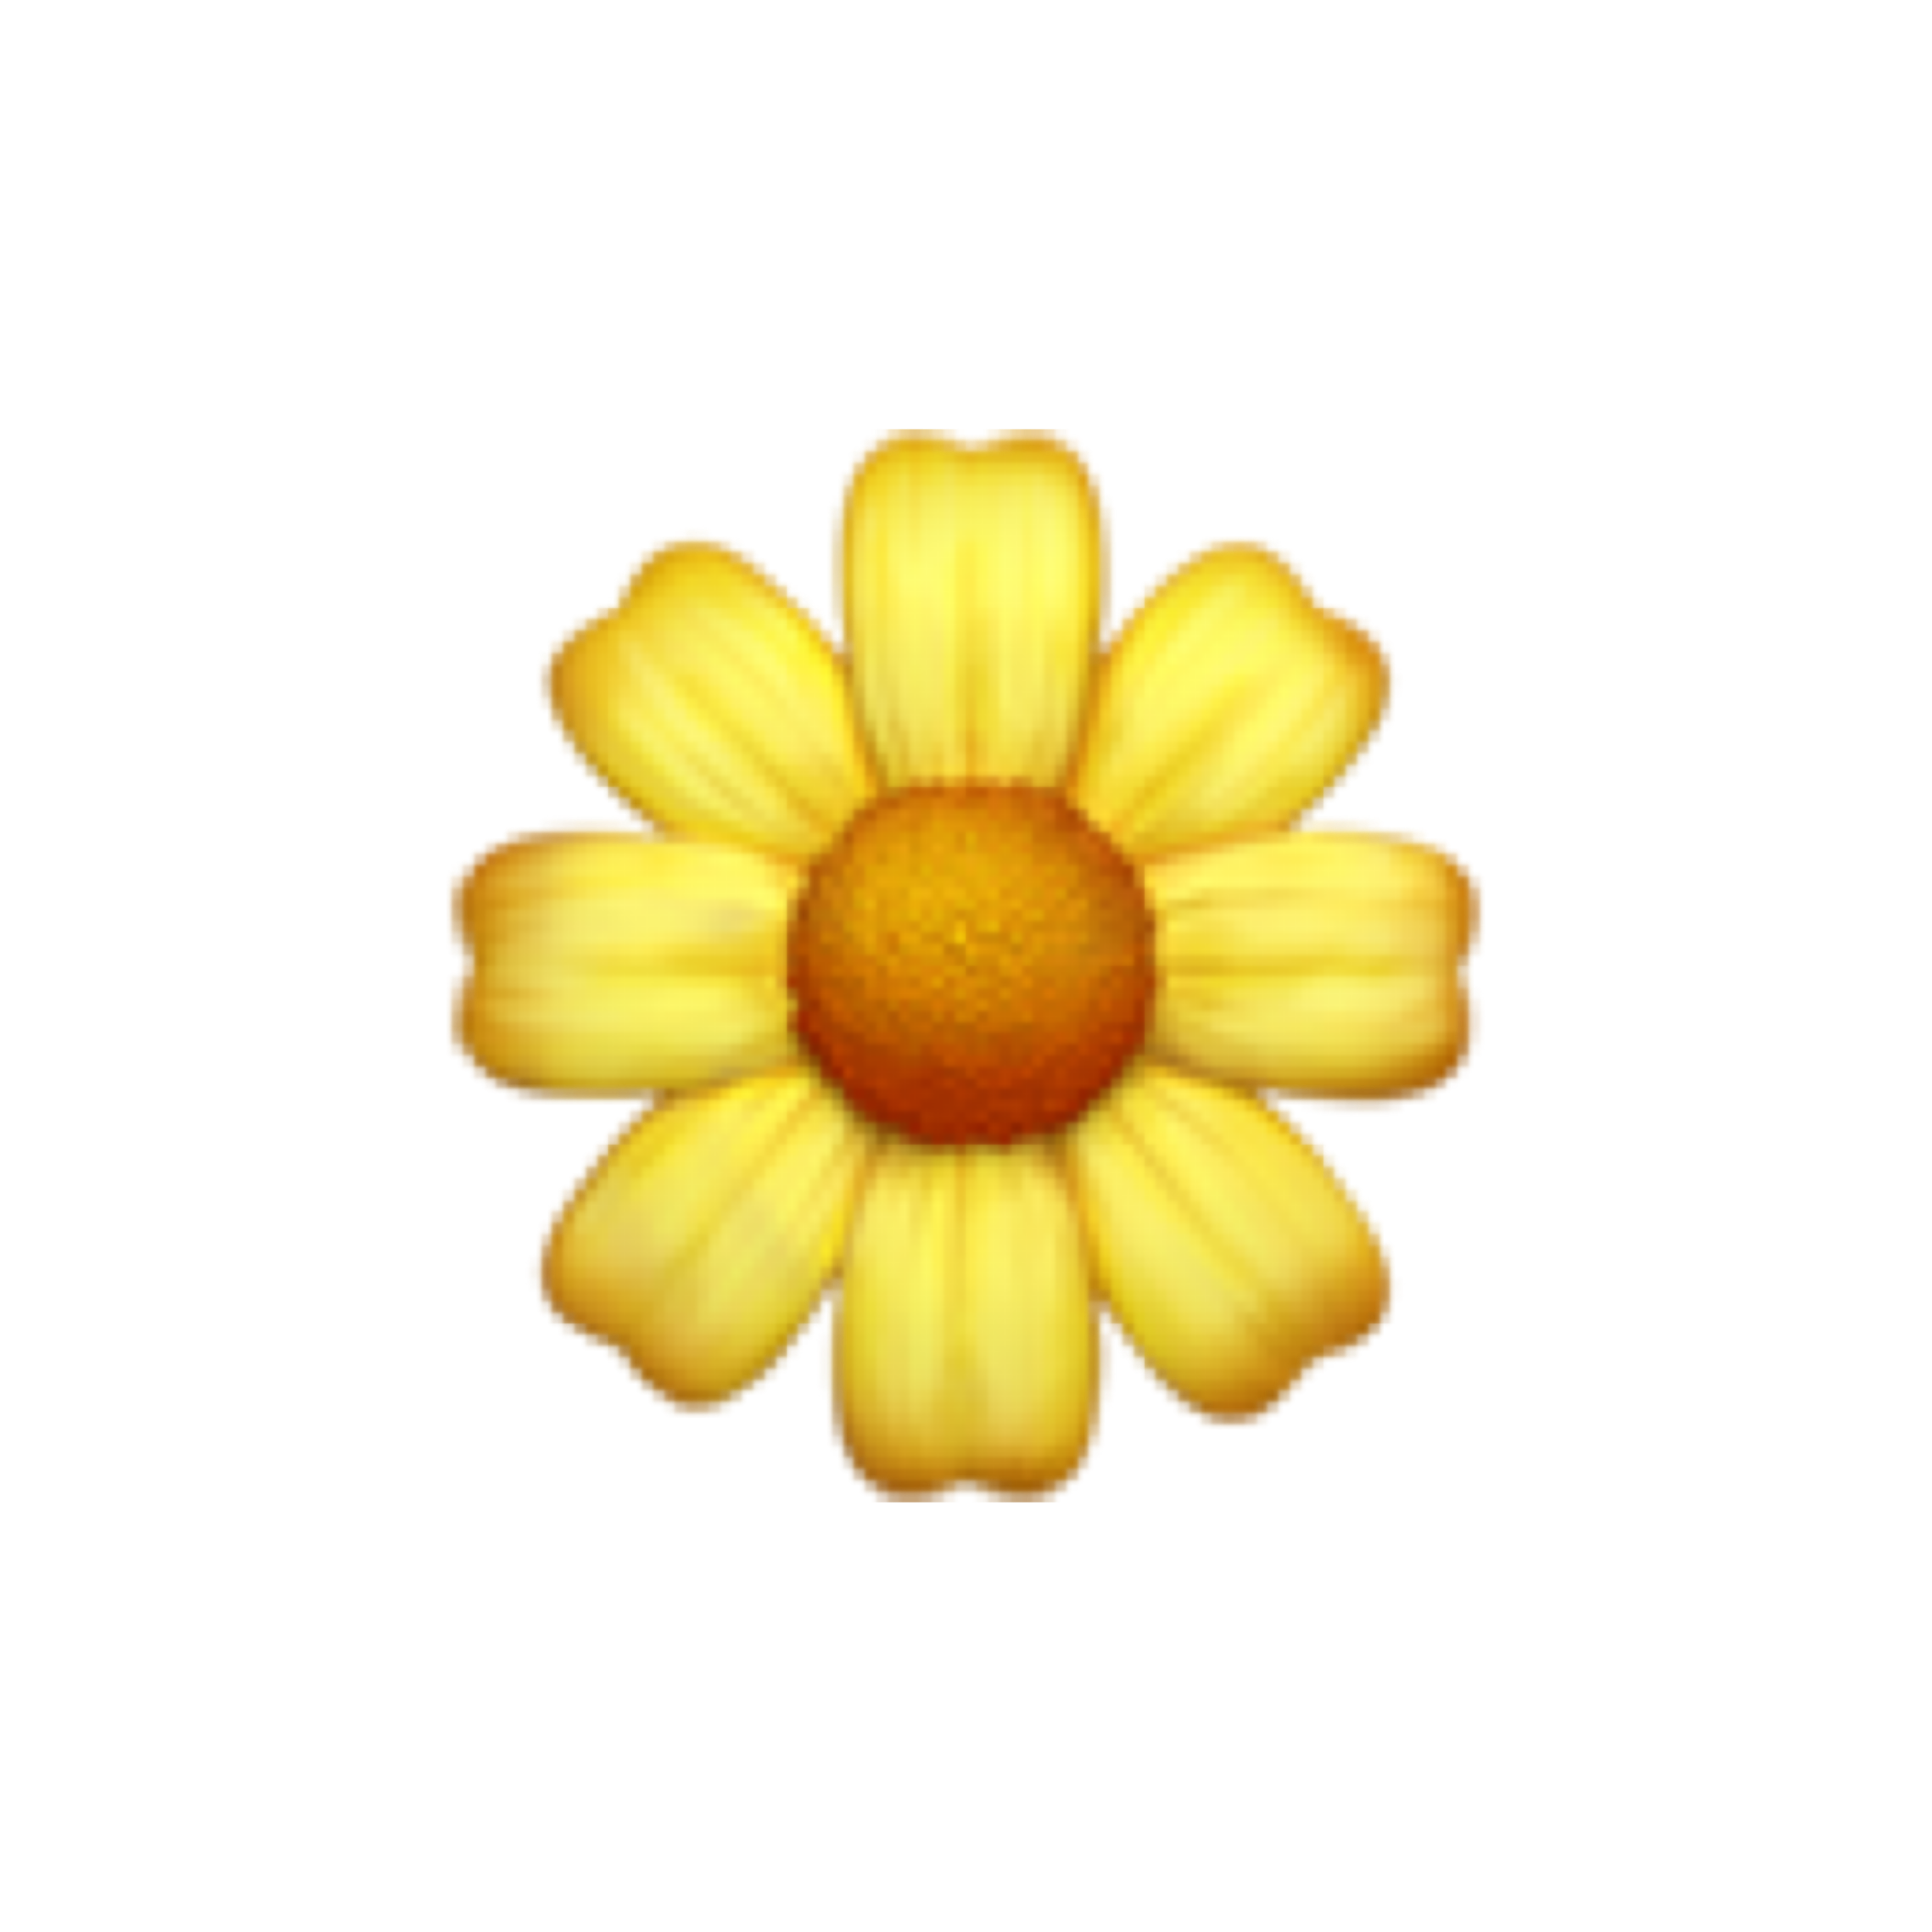 Black Flower Emoji Iphone - Flowers Healthy